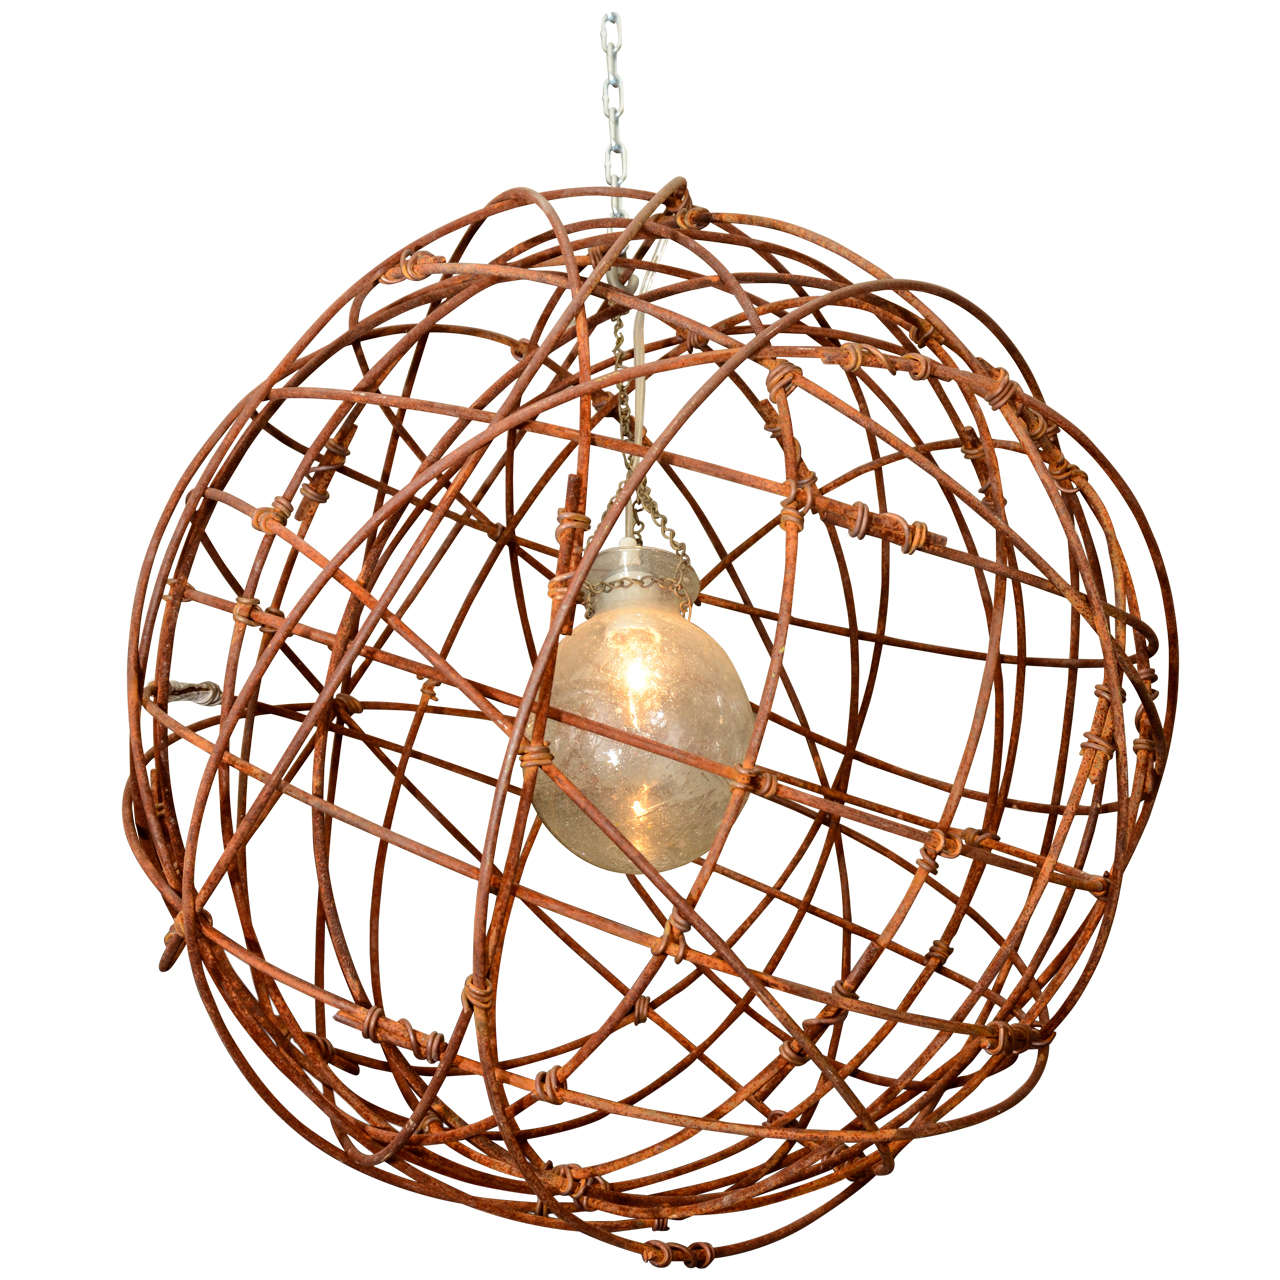 Enticing sphere chandelier metal orb chandelier with interesting Cheap Price for your Home Lighting